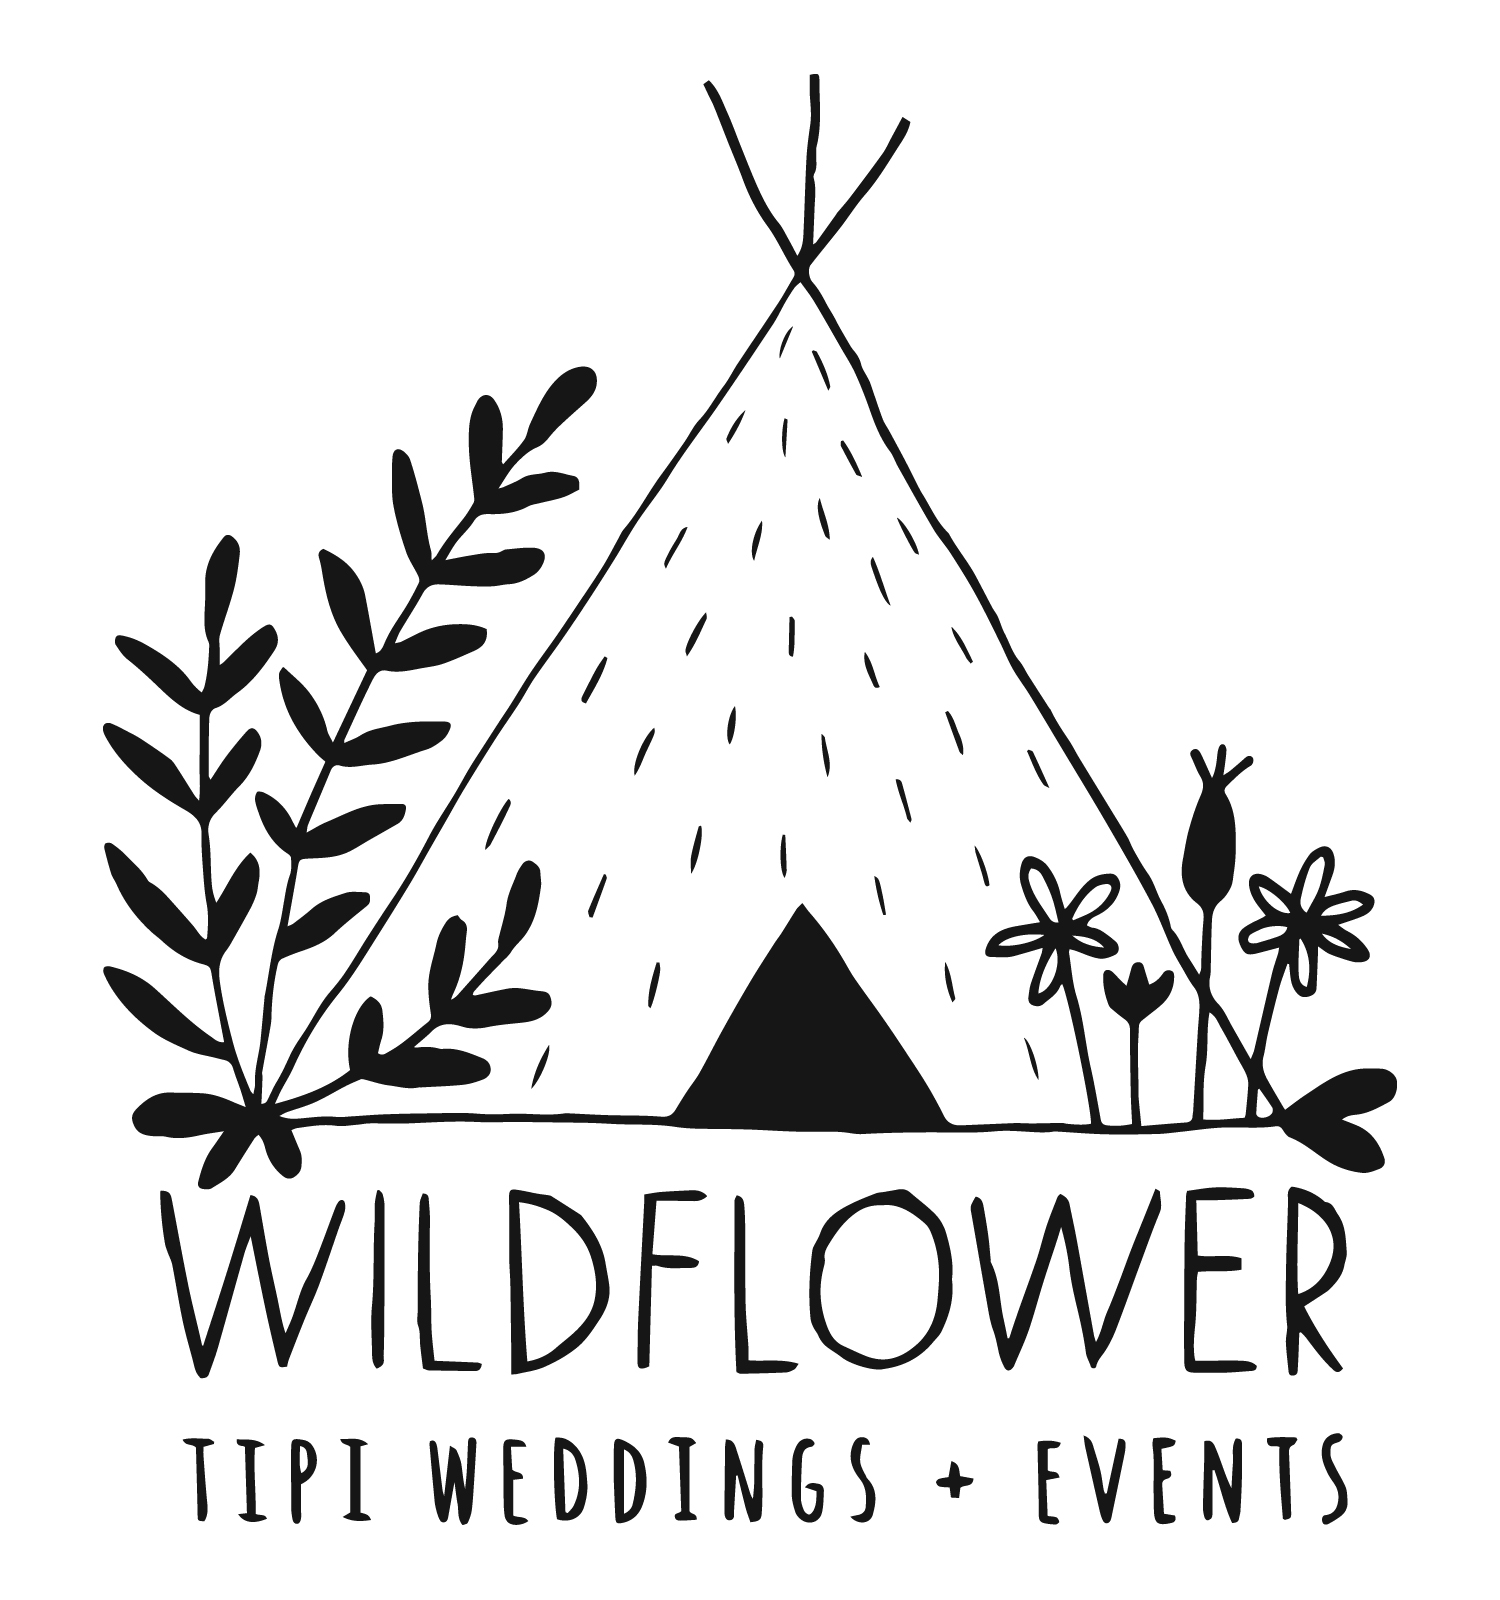 Behind Every Boss Ltd trading as Wildflower Events's Company logo